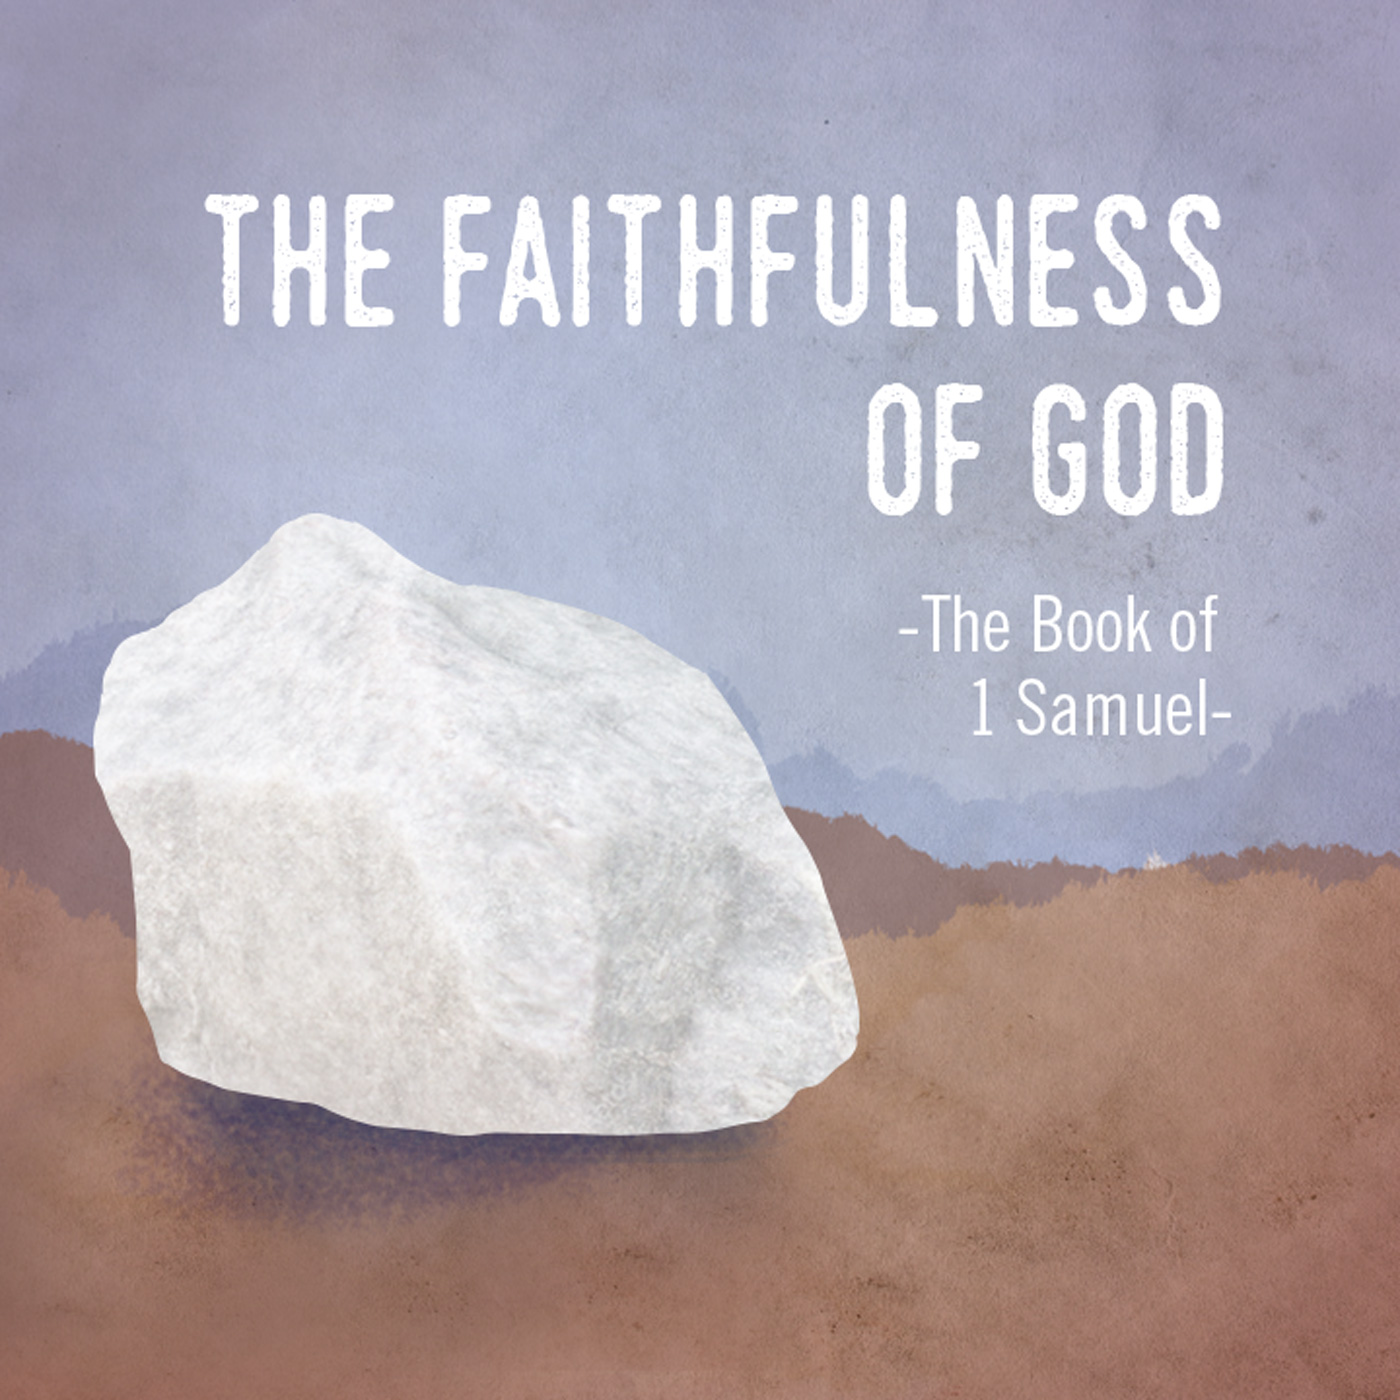 1 Samuel: The Anointing of David - The Faithfulness of God: The Book of 1 Samuel